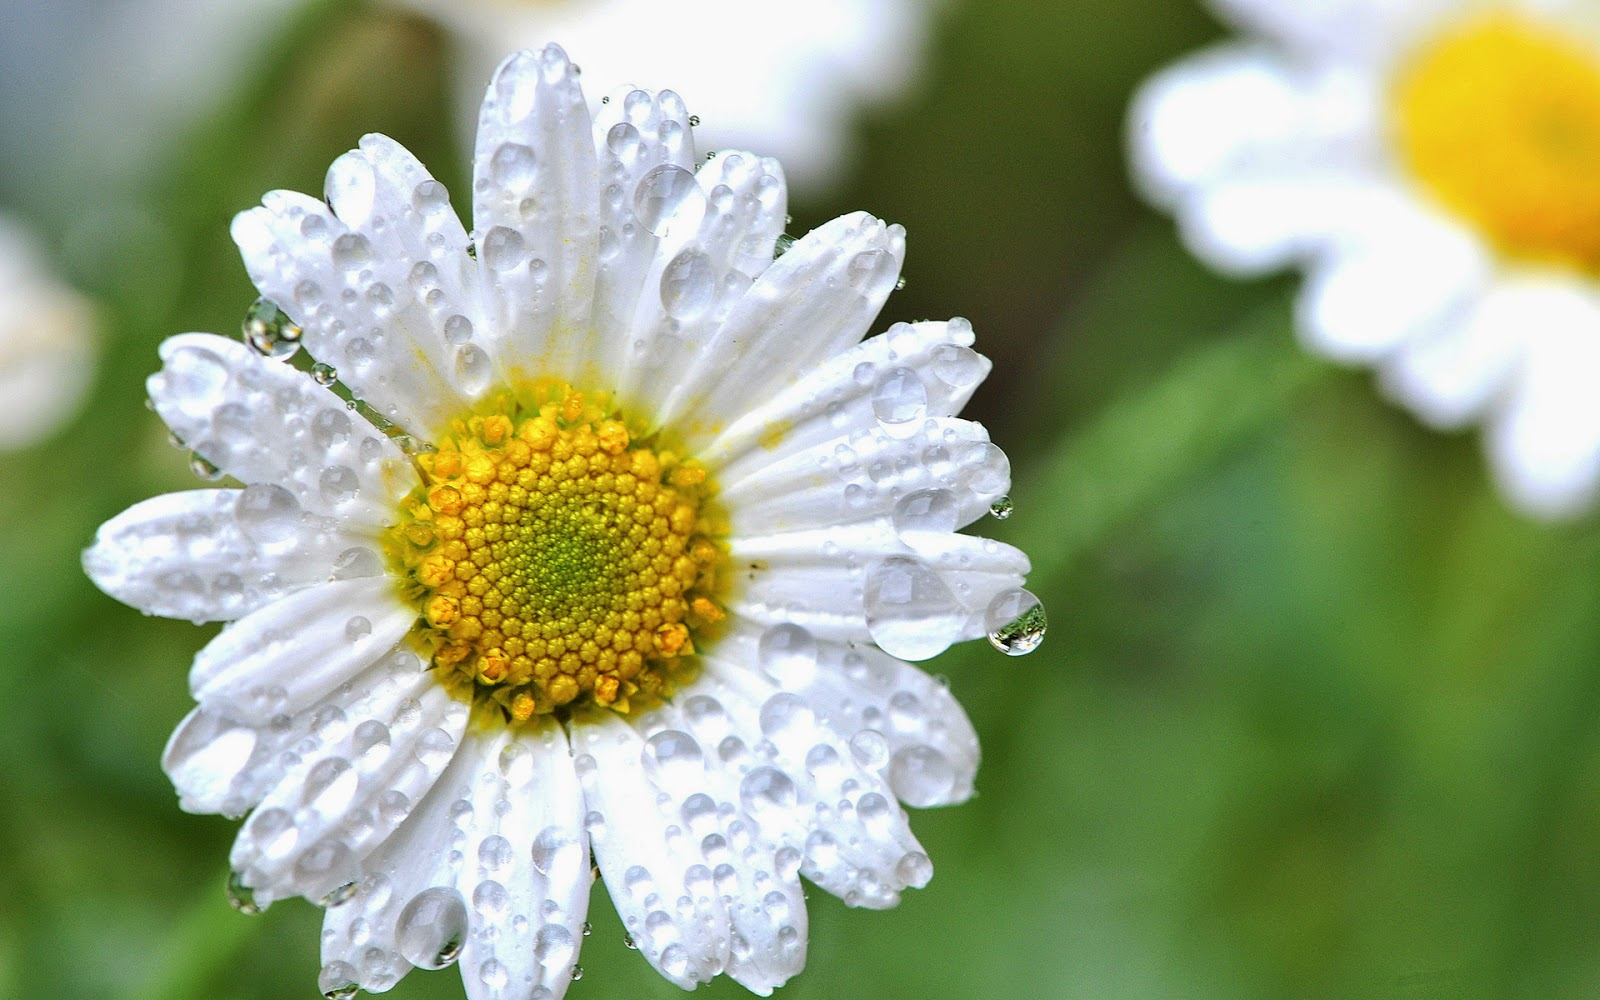 White-daisy-flower-closeup-photo.jpg